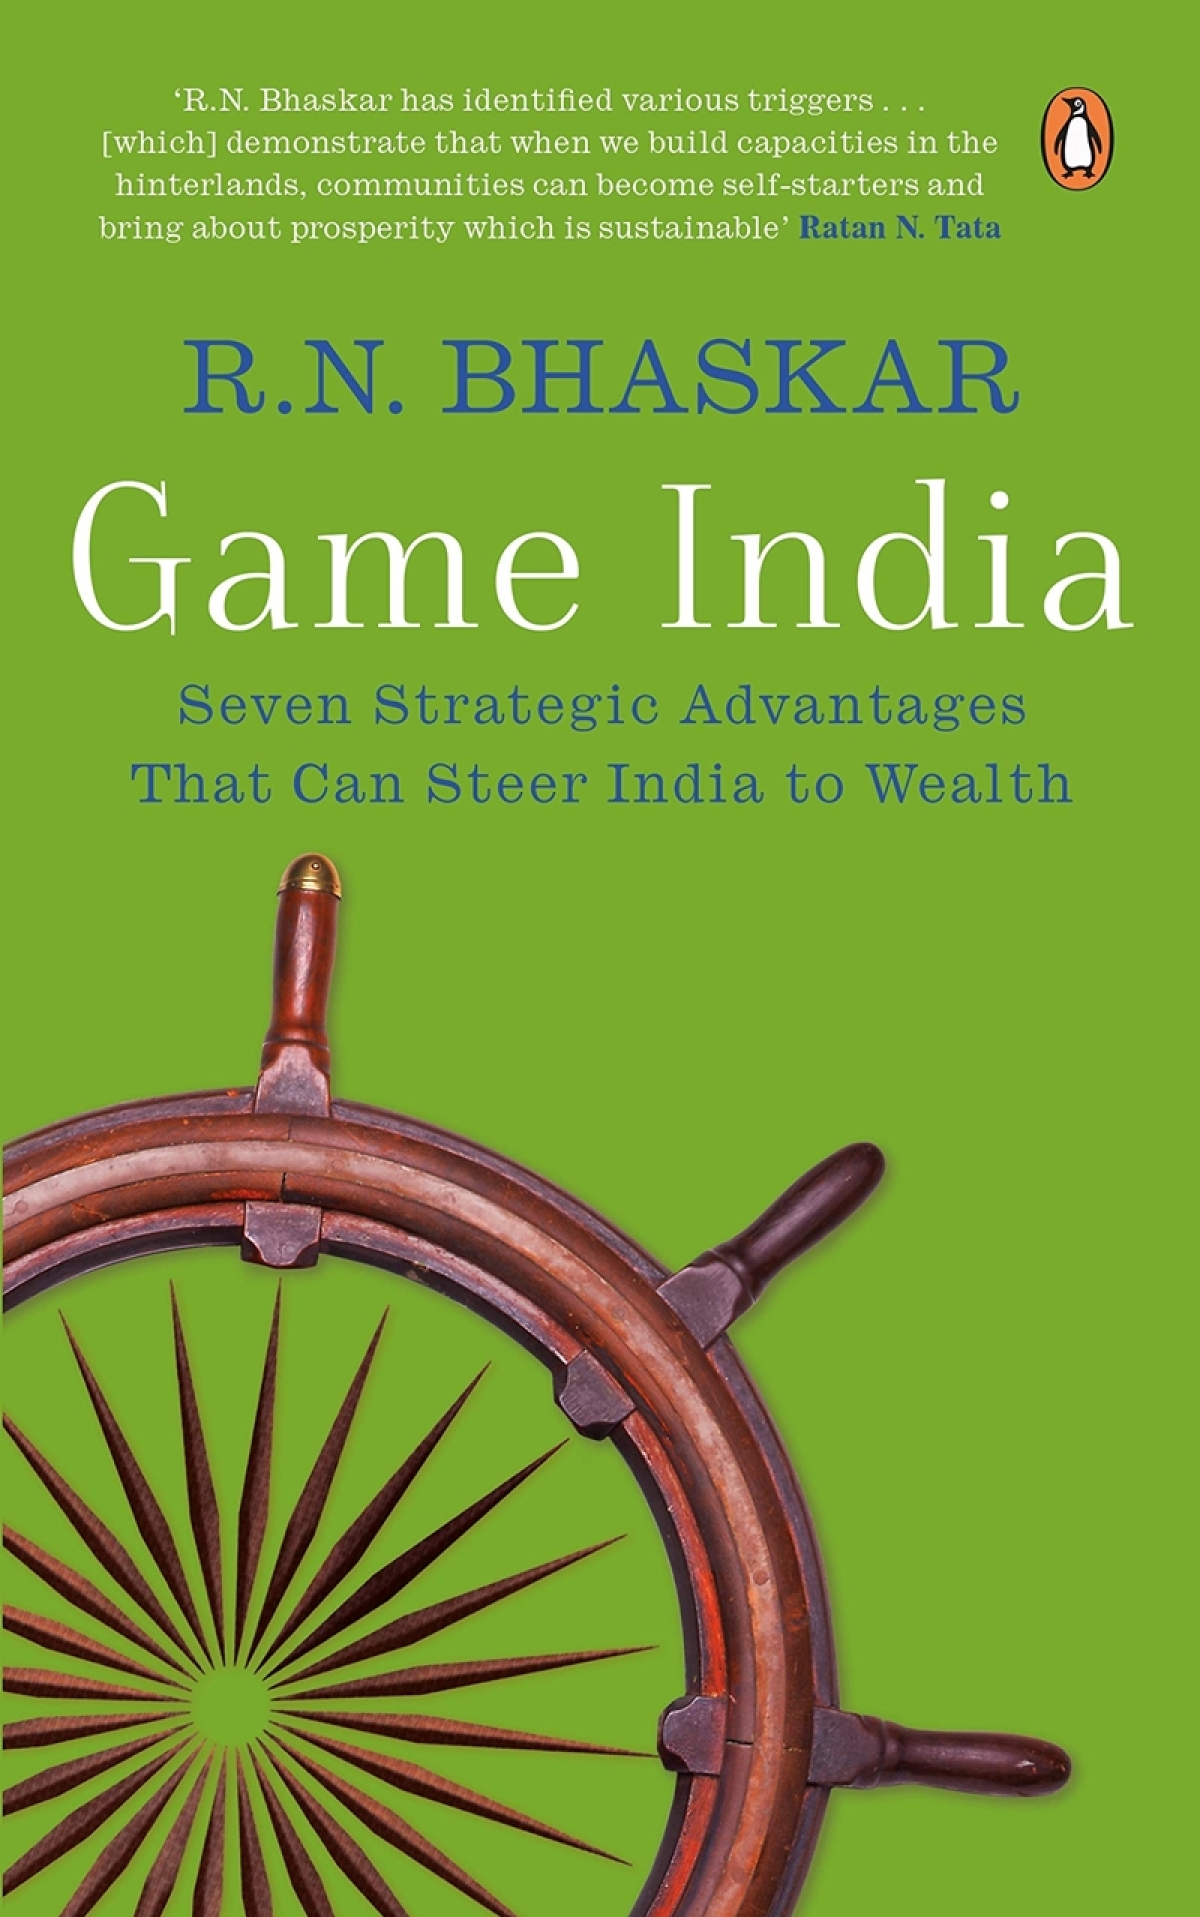 Game India: Seven Strategic Advantages That Can Steer India to Wealth by R.N. Bhaskar- Review